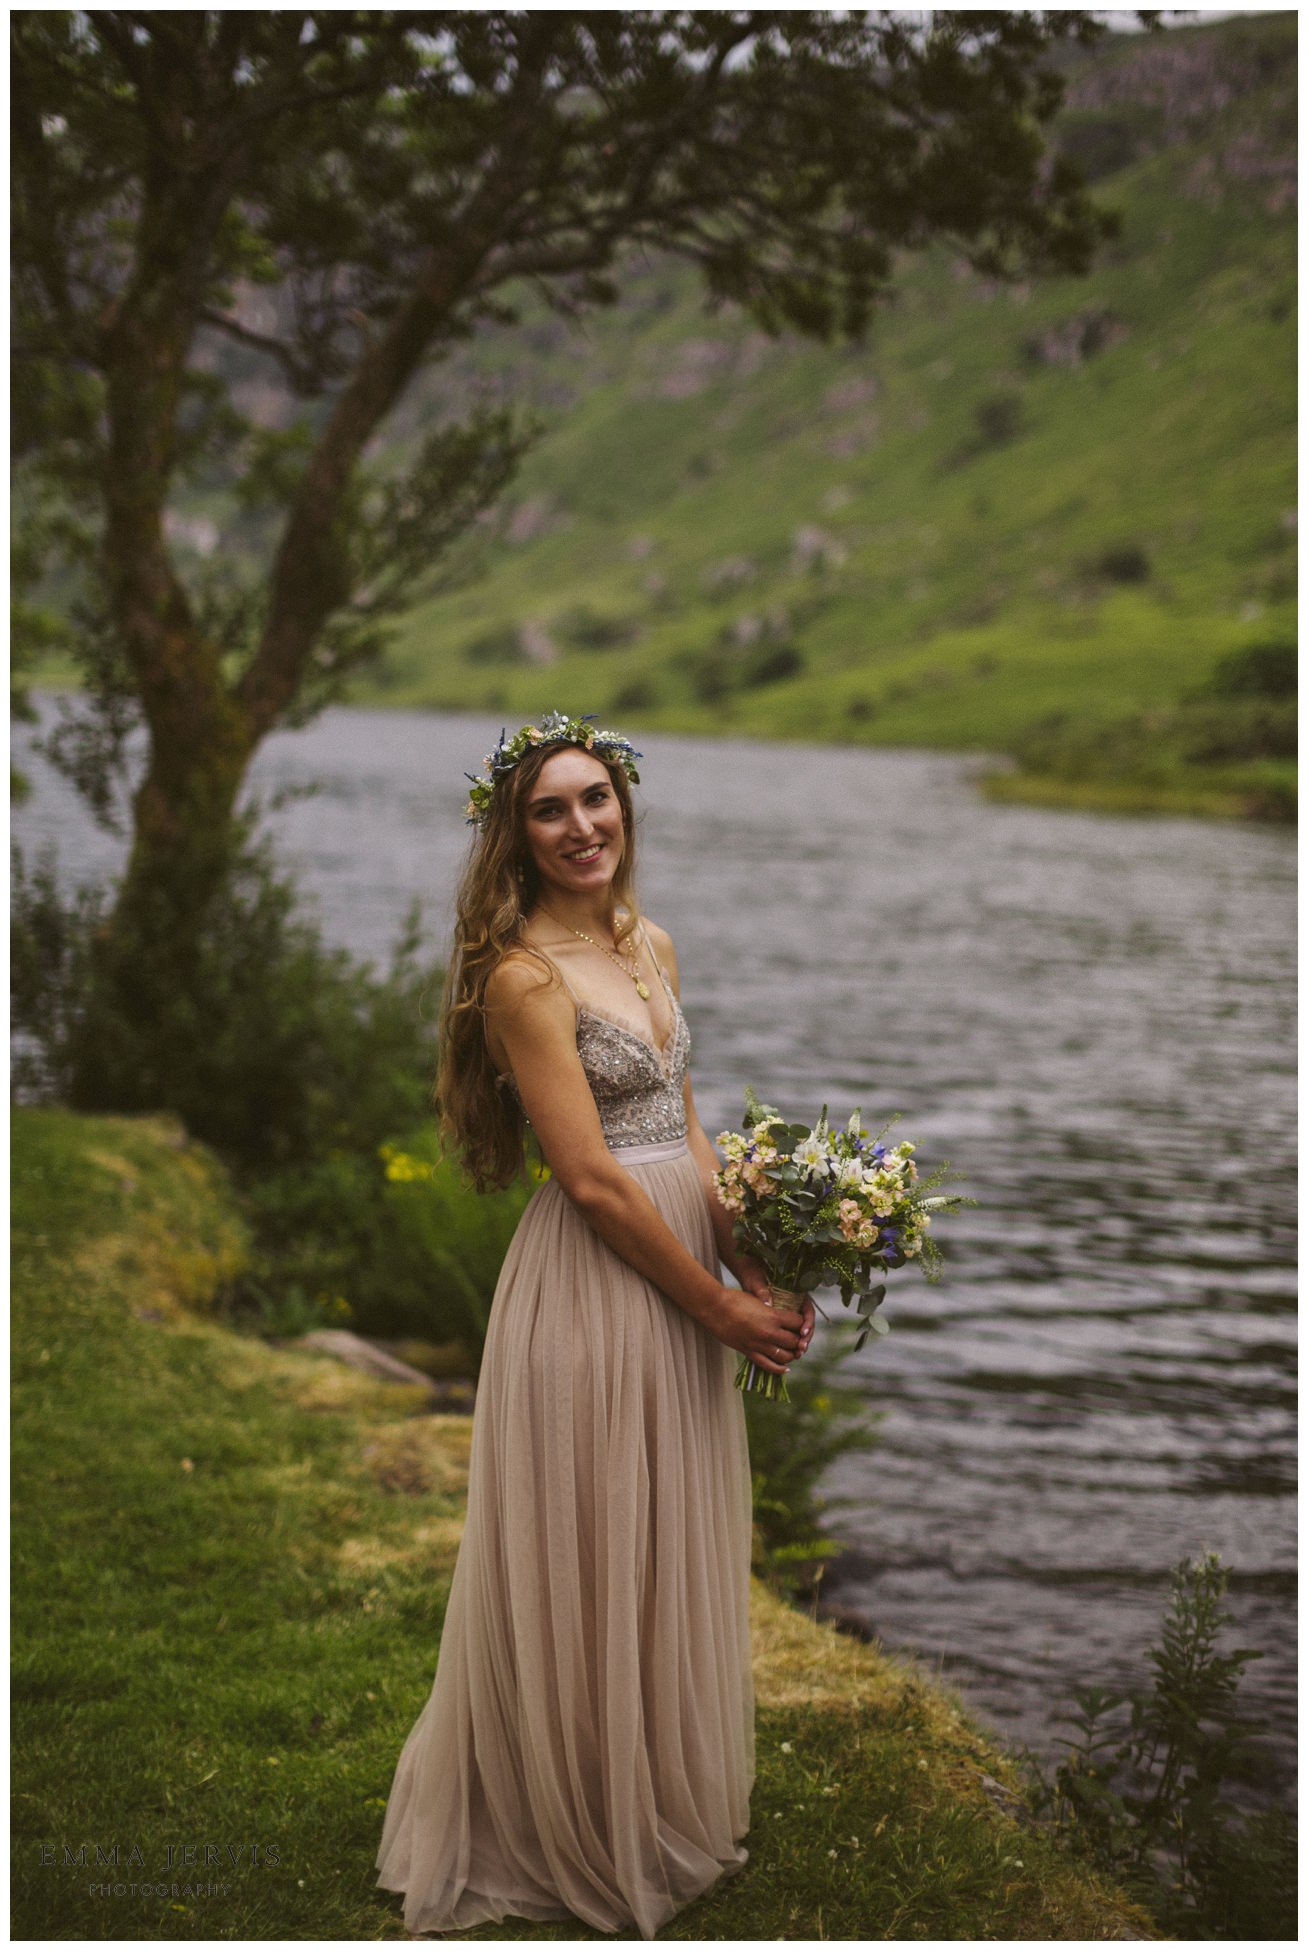 Gougane barra wedding, boho wedding, emma jervis, cork wedding photographer, elope to ireland